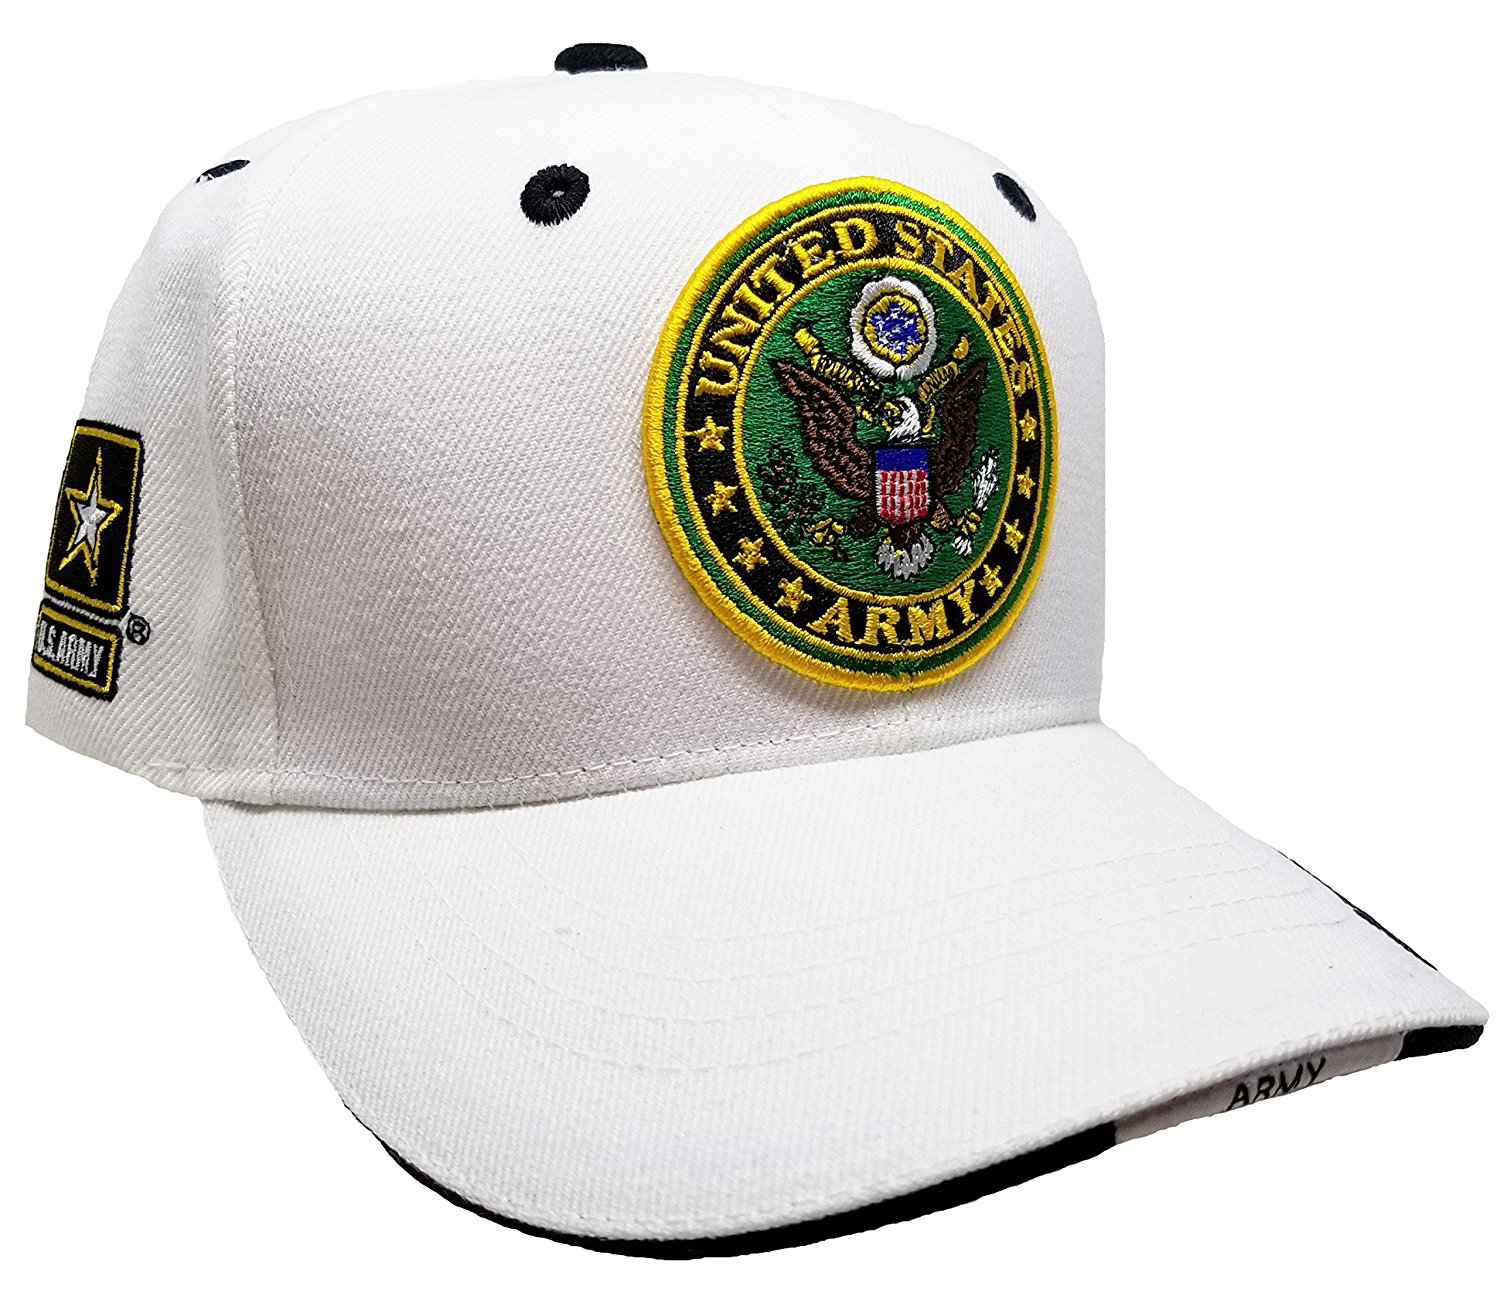 77e71b692d6451 Get Quotations · Buy Caps and Hats U.S. Army Cap with Logo White  Embroidered Hat United States Mens